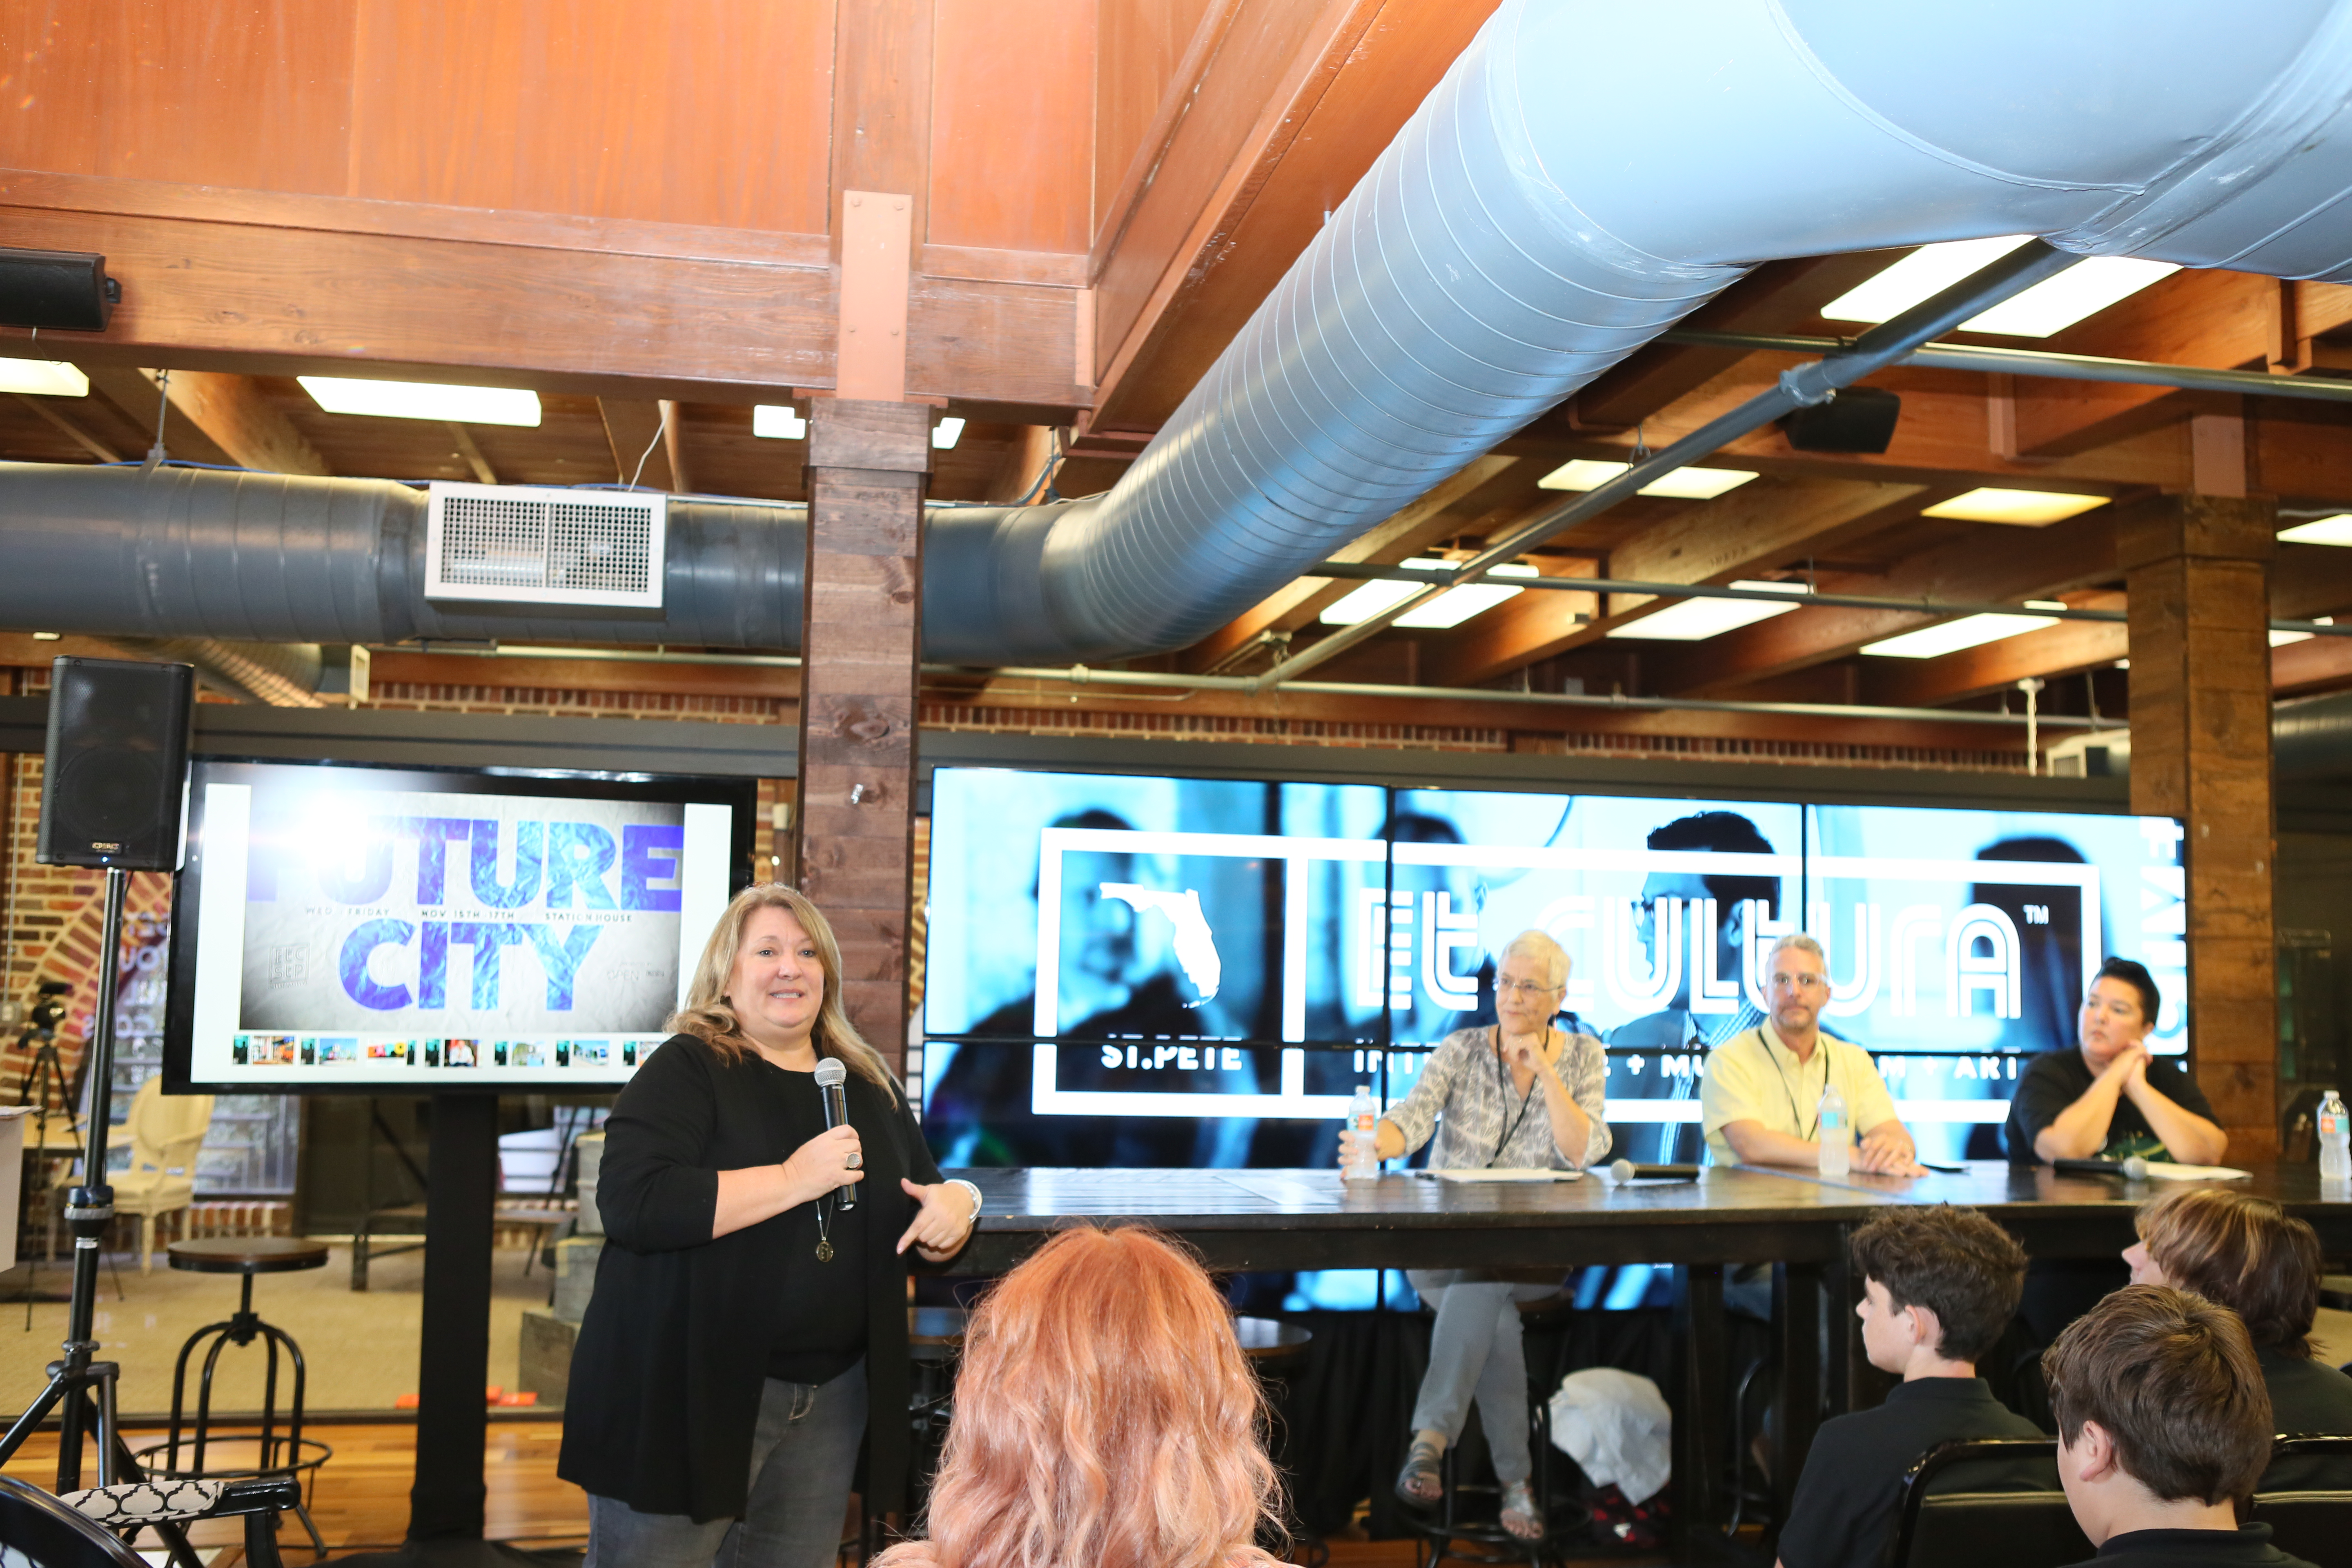 OPEN and Et Cultura Invite Leaders to Talk Cities